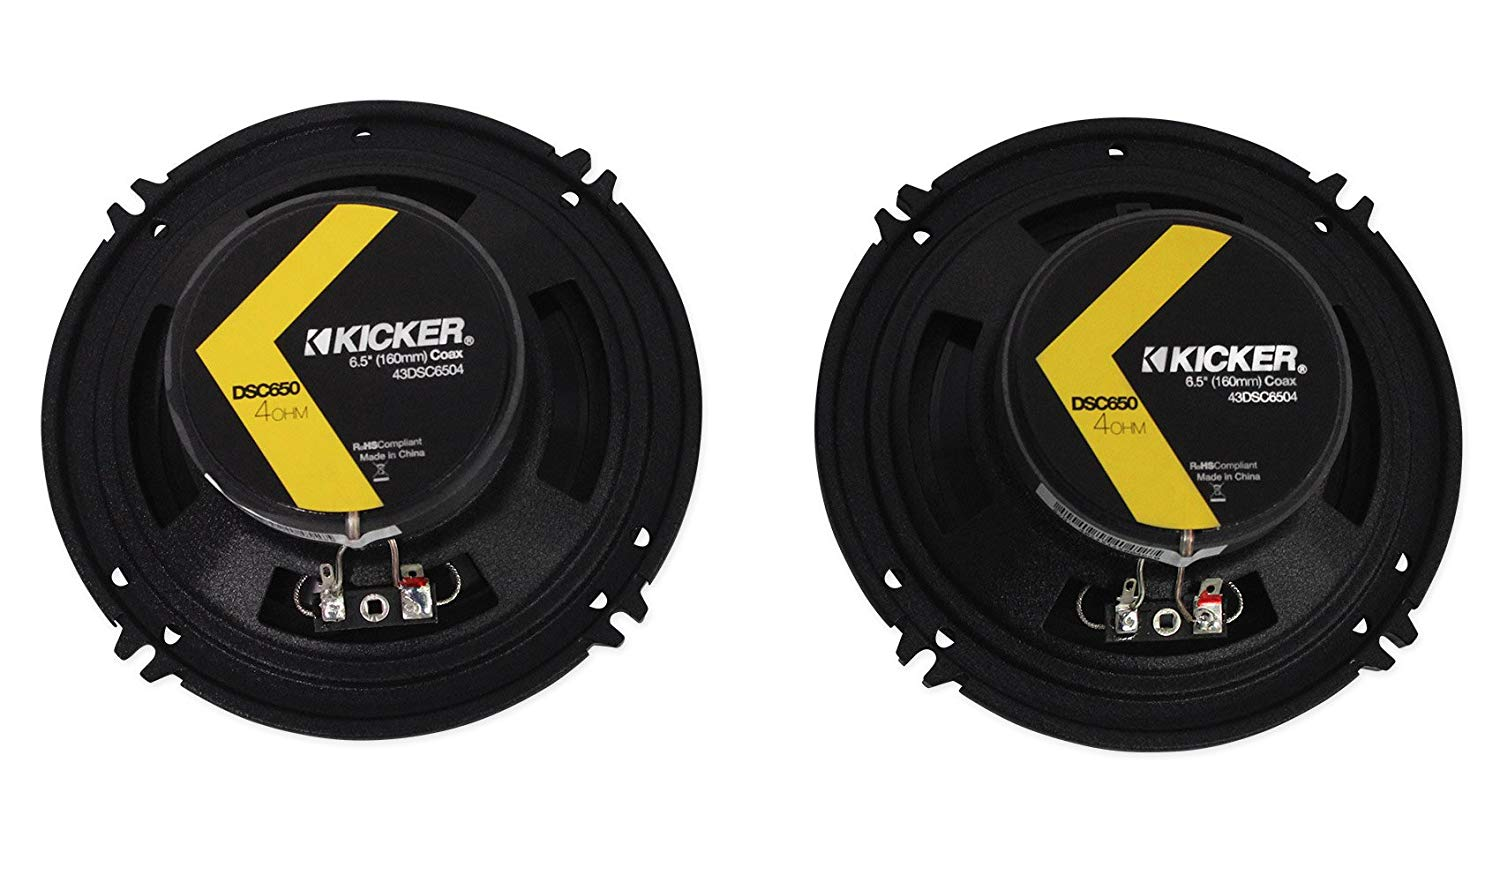 Kicker DSC650 6-1/2-Inch Coaxial Speakers - 240 watts